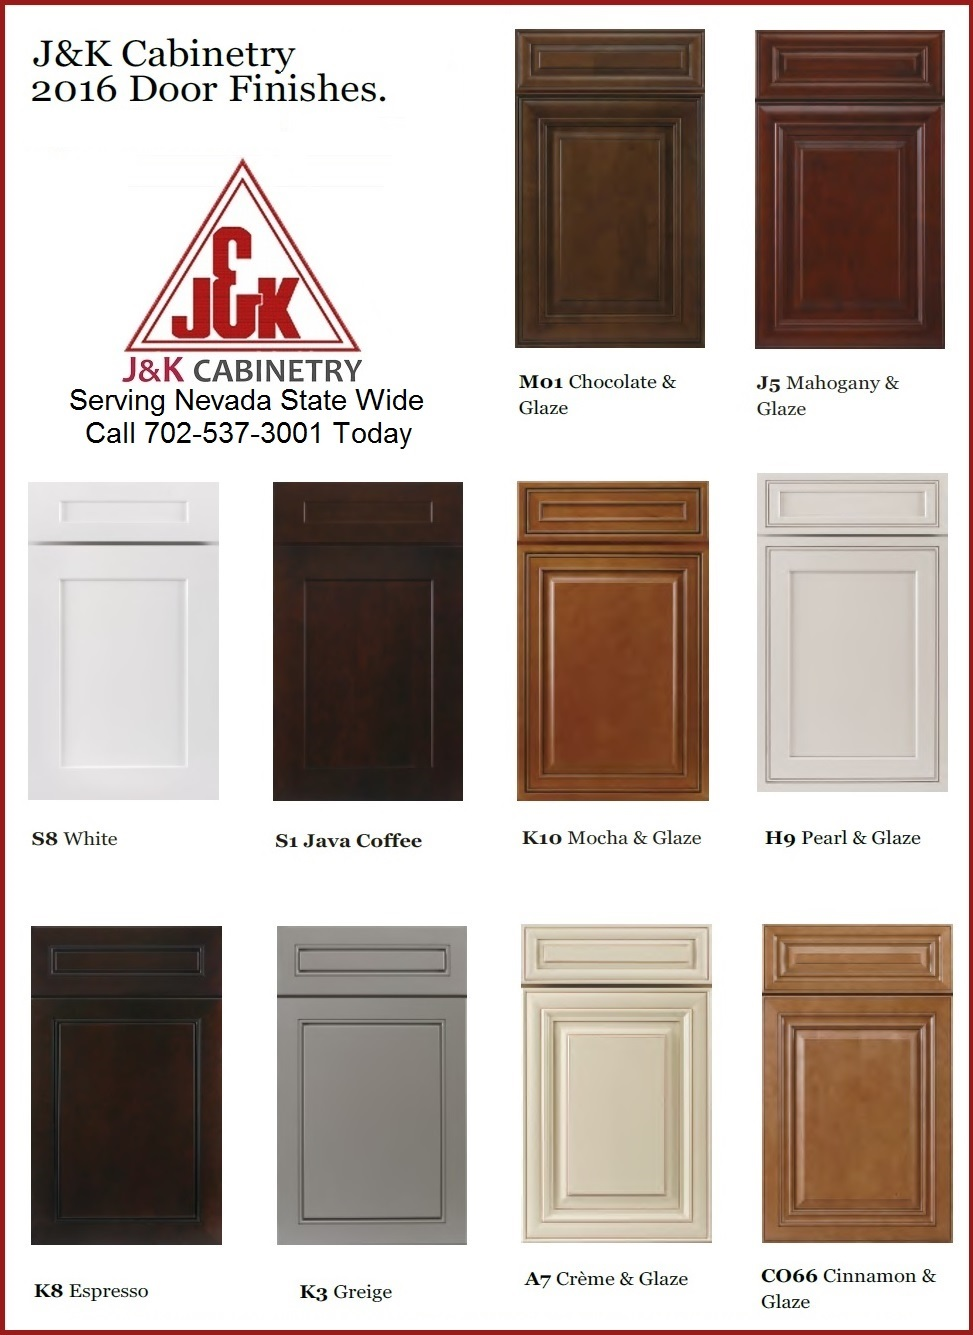 Wholesale cabinets las vegas nevada wholesale rta rtb - Discount bathroom vanities las vegas ...